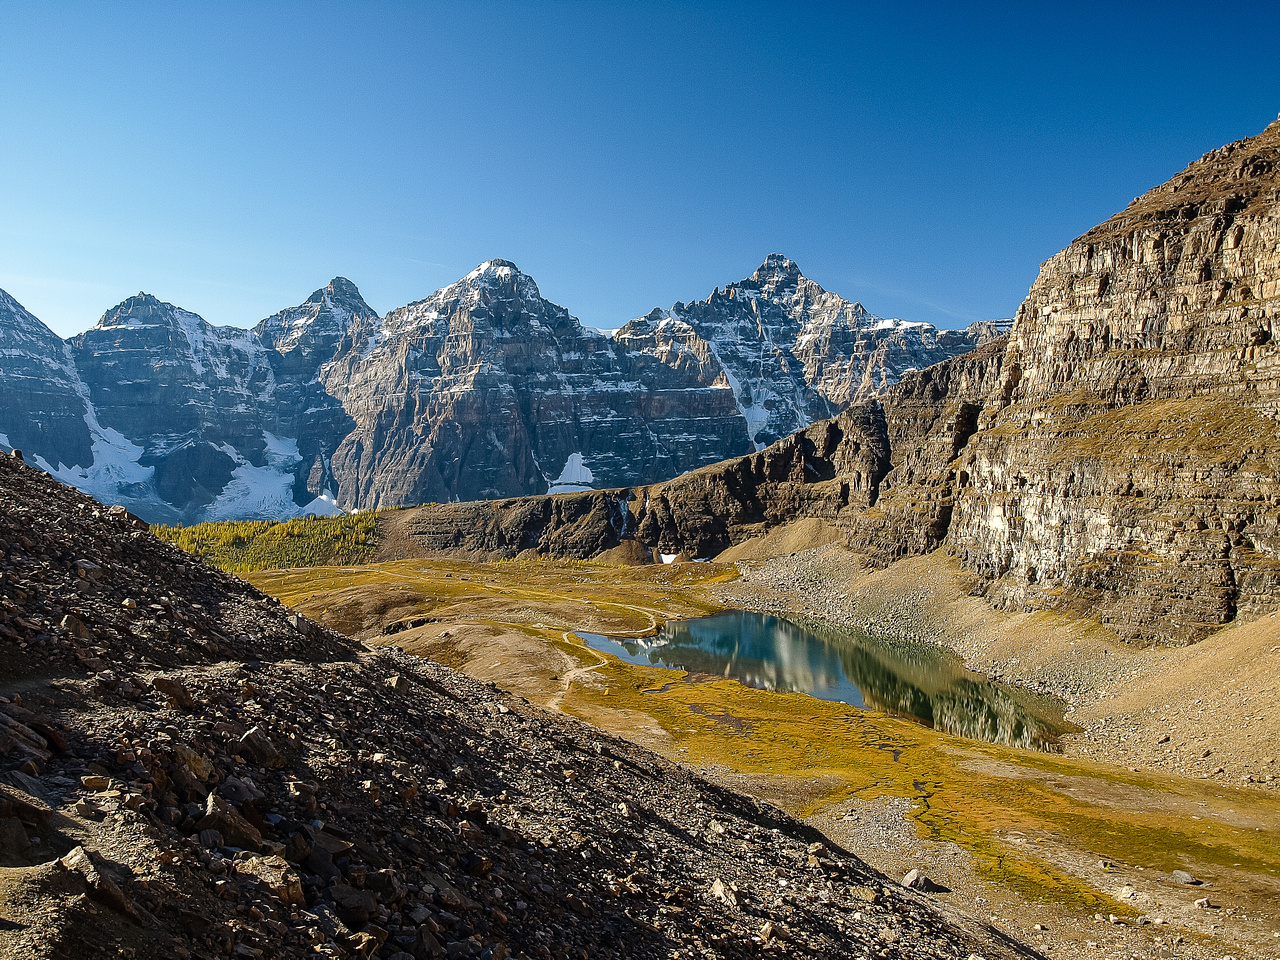 Looking down at a perfectly calm Larch Valley tarn on one of the most beautiful fall days I've ever had in the Rockies.